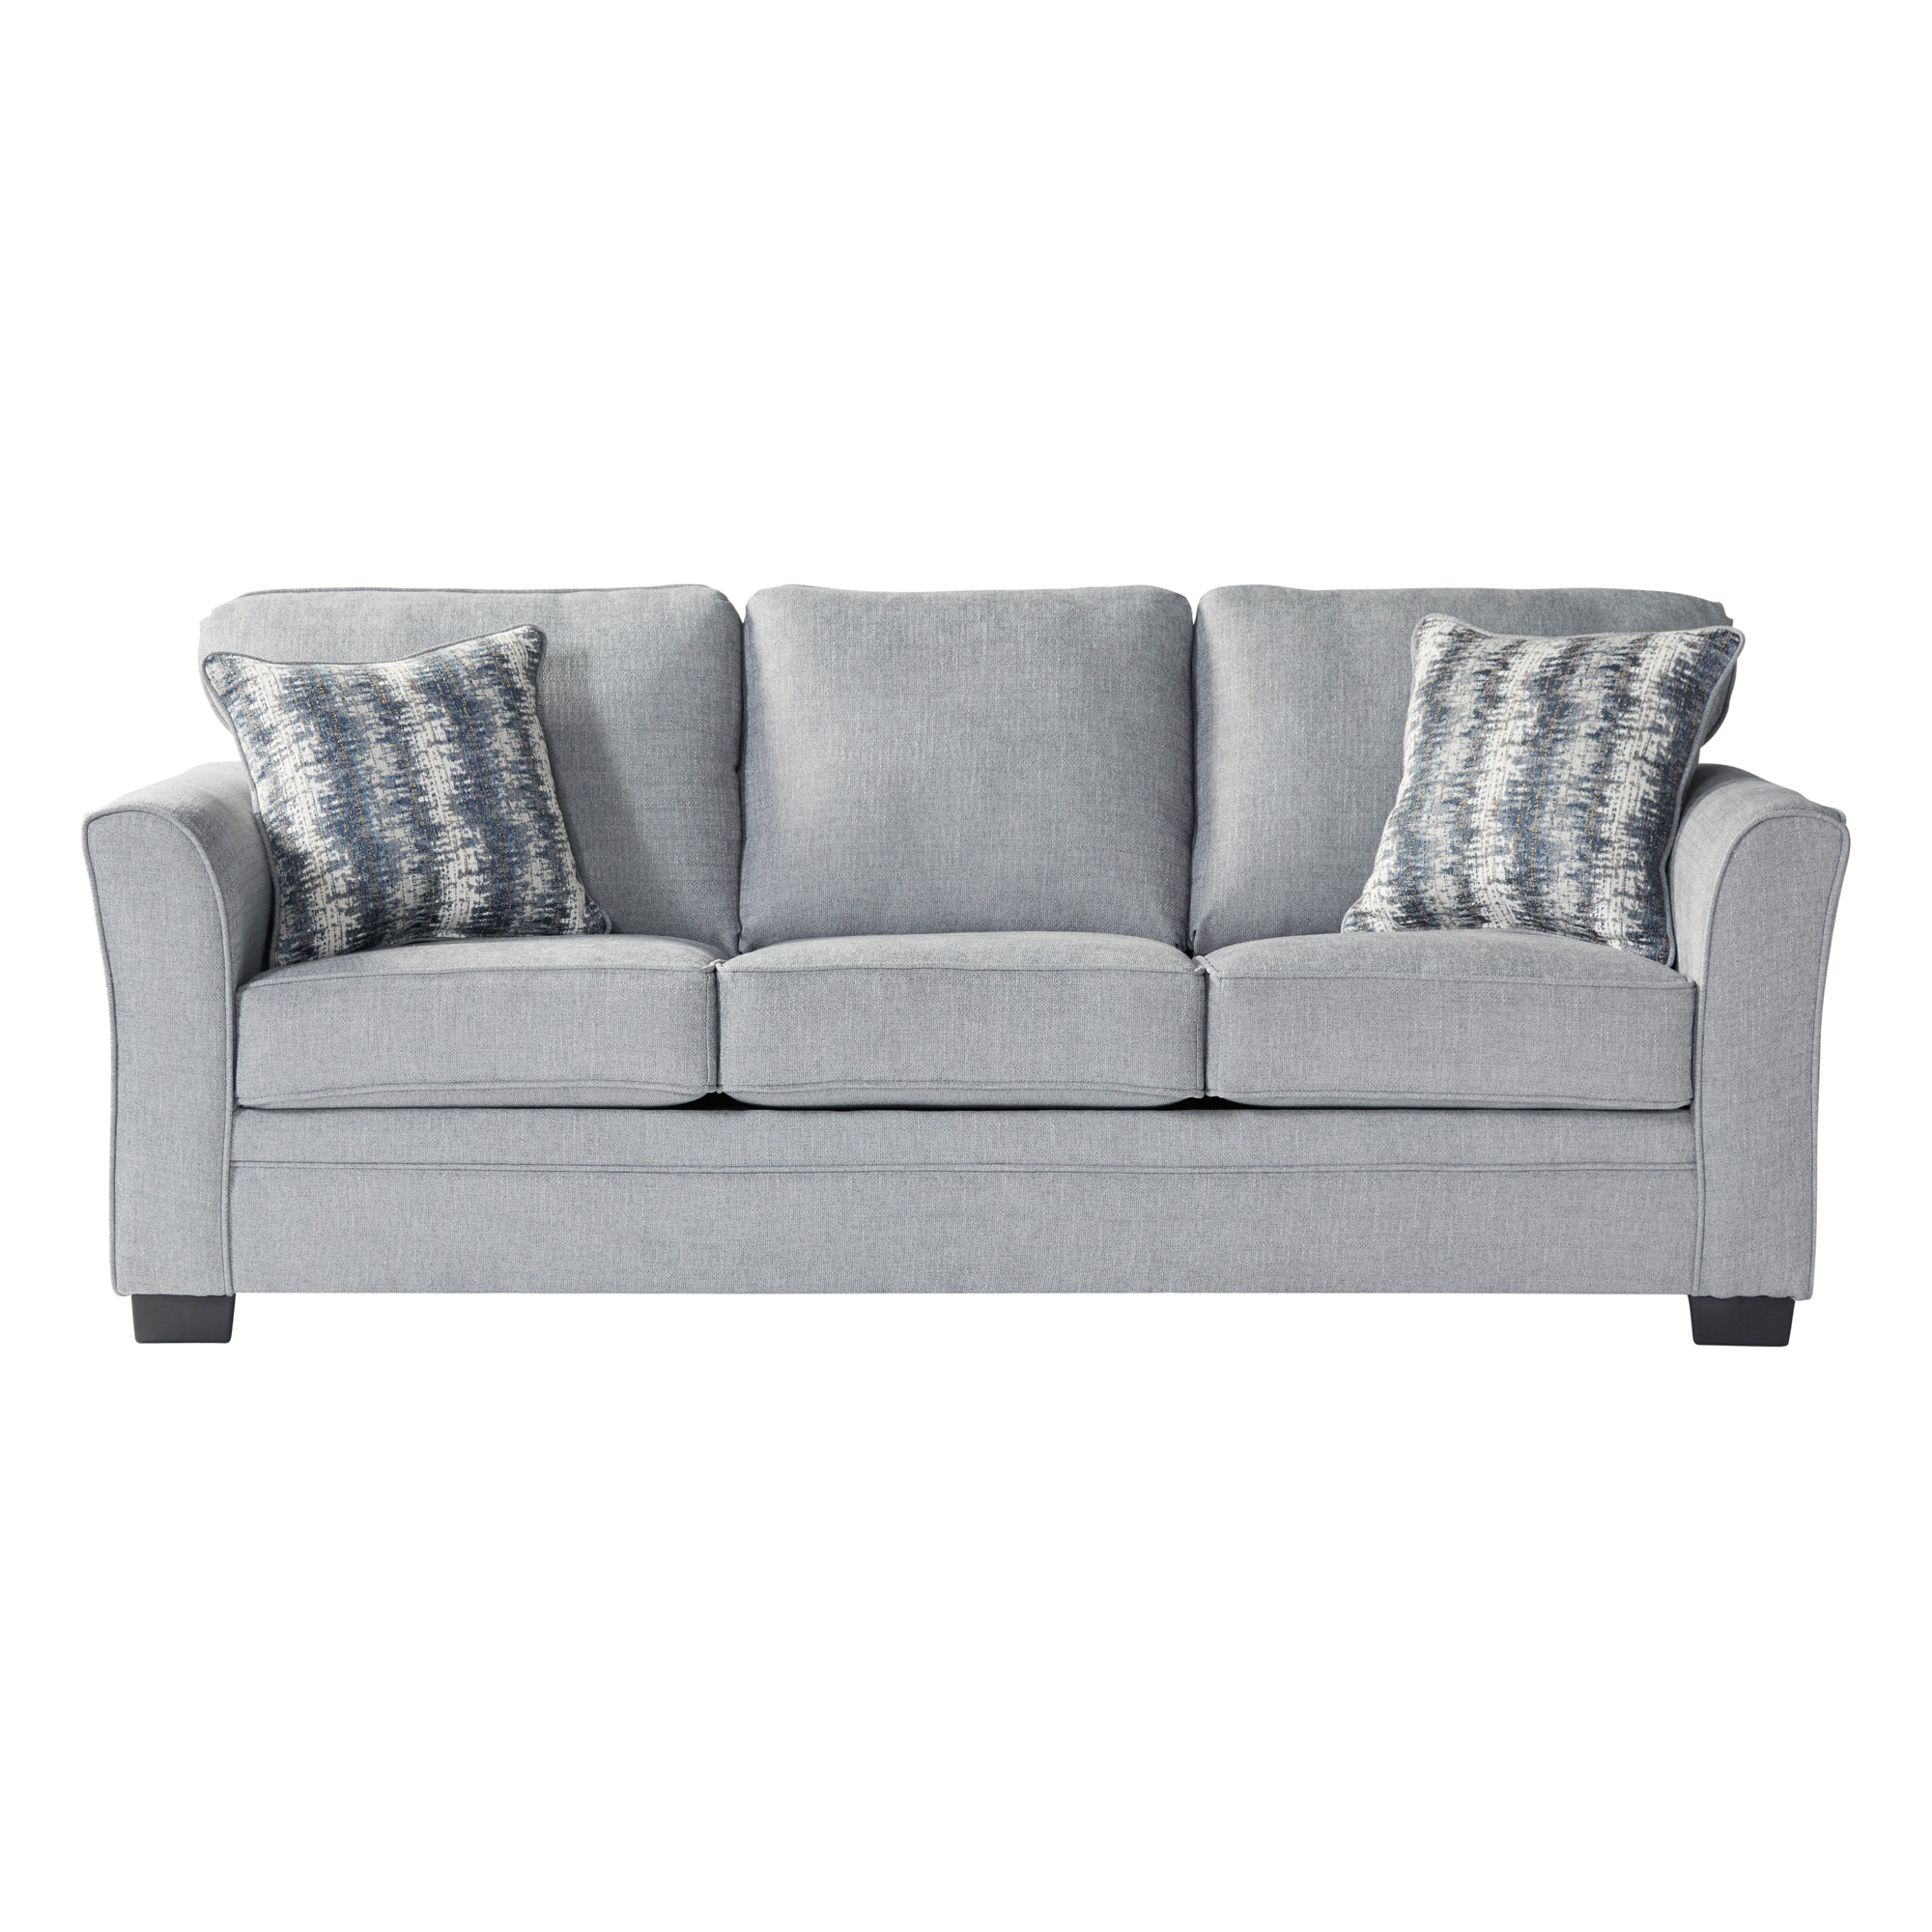 Serta Upholstery By Hughes Furniture | Bolster Mist Queen Sleeper Sofa